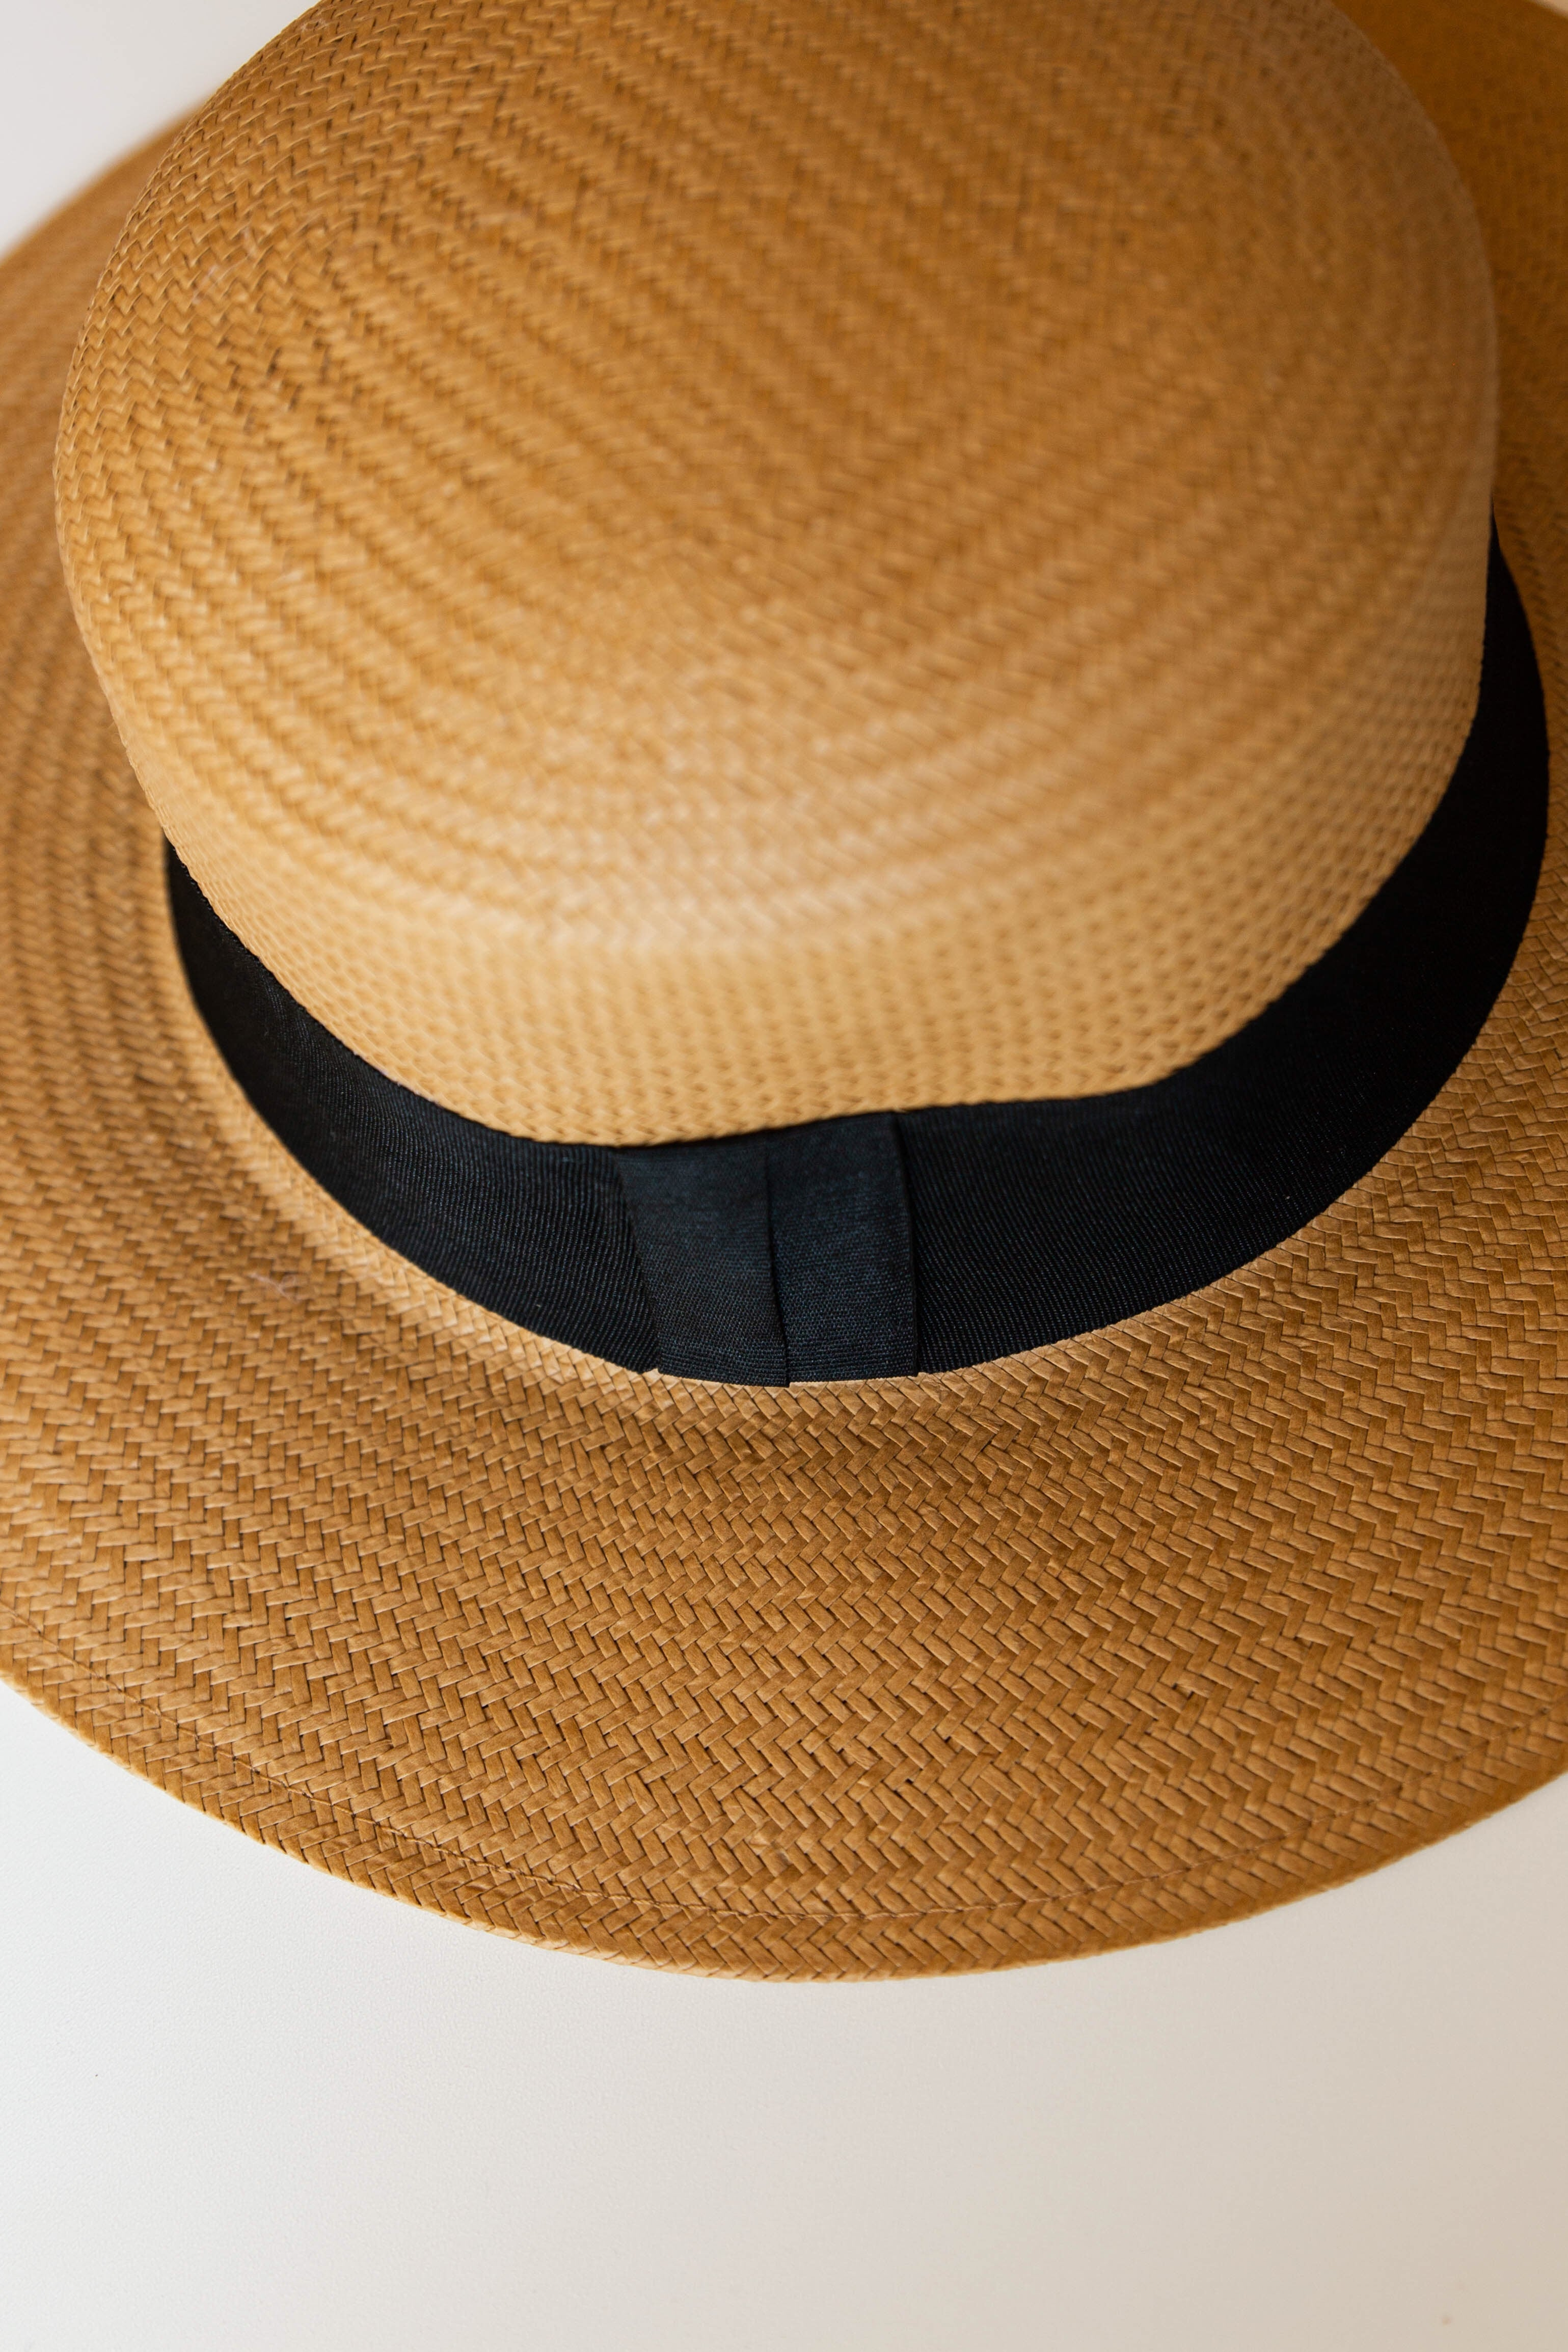 mode, shady face round sun hat